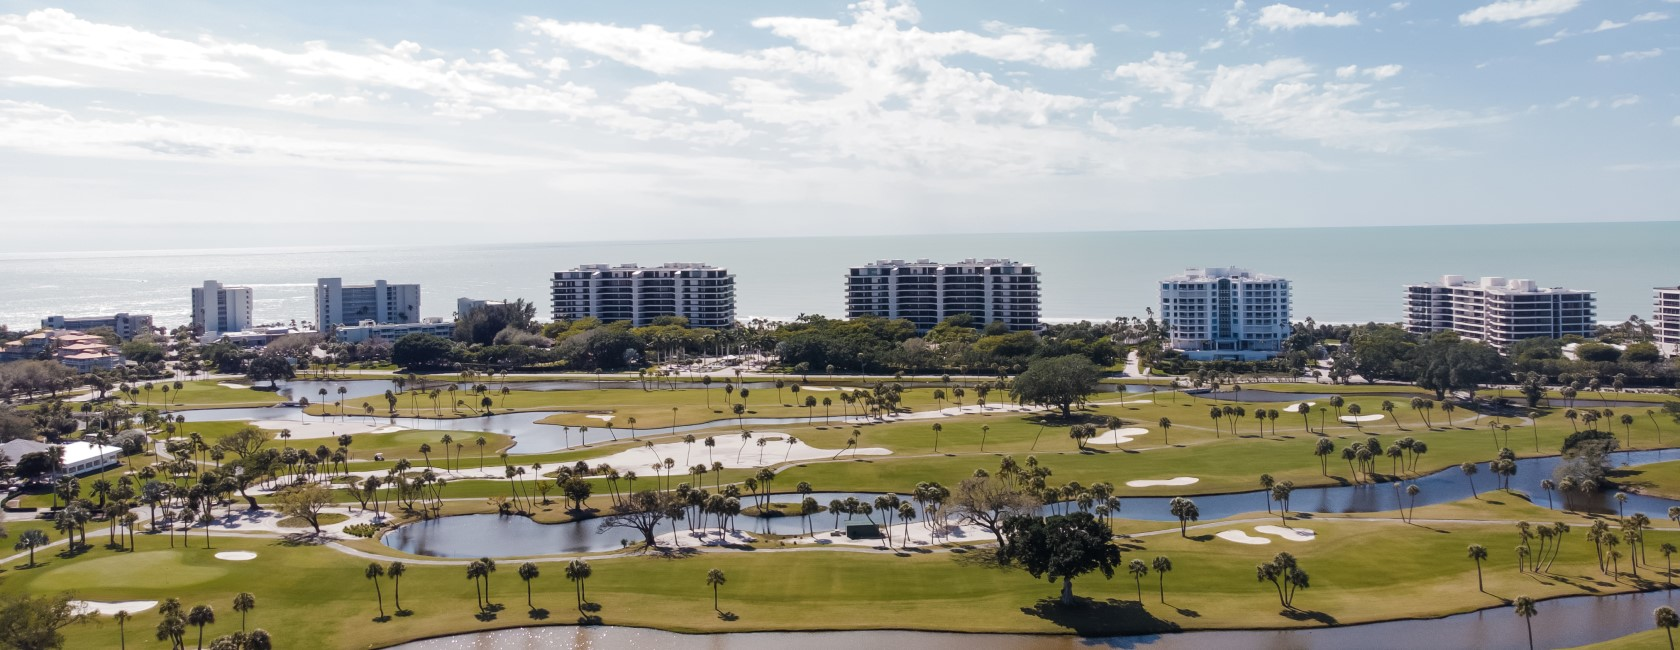 Golf course near Gulf of Mexico